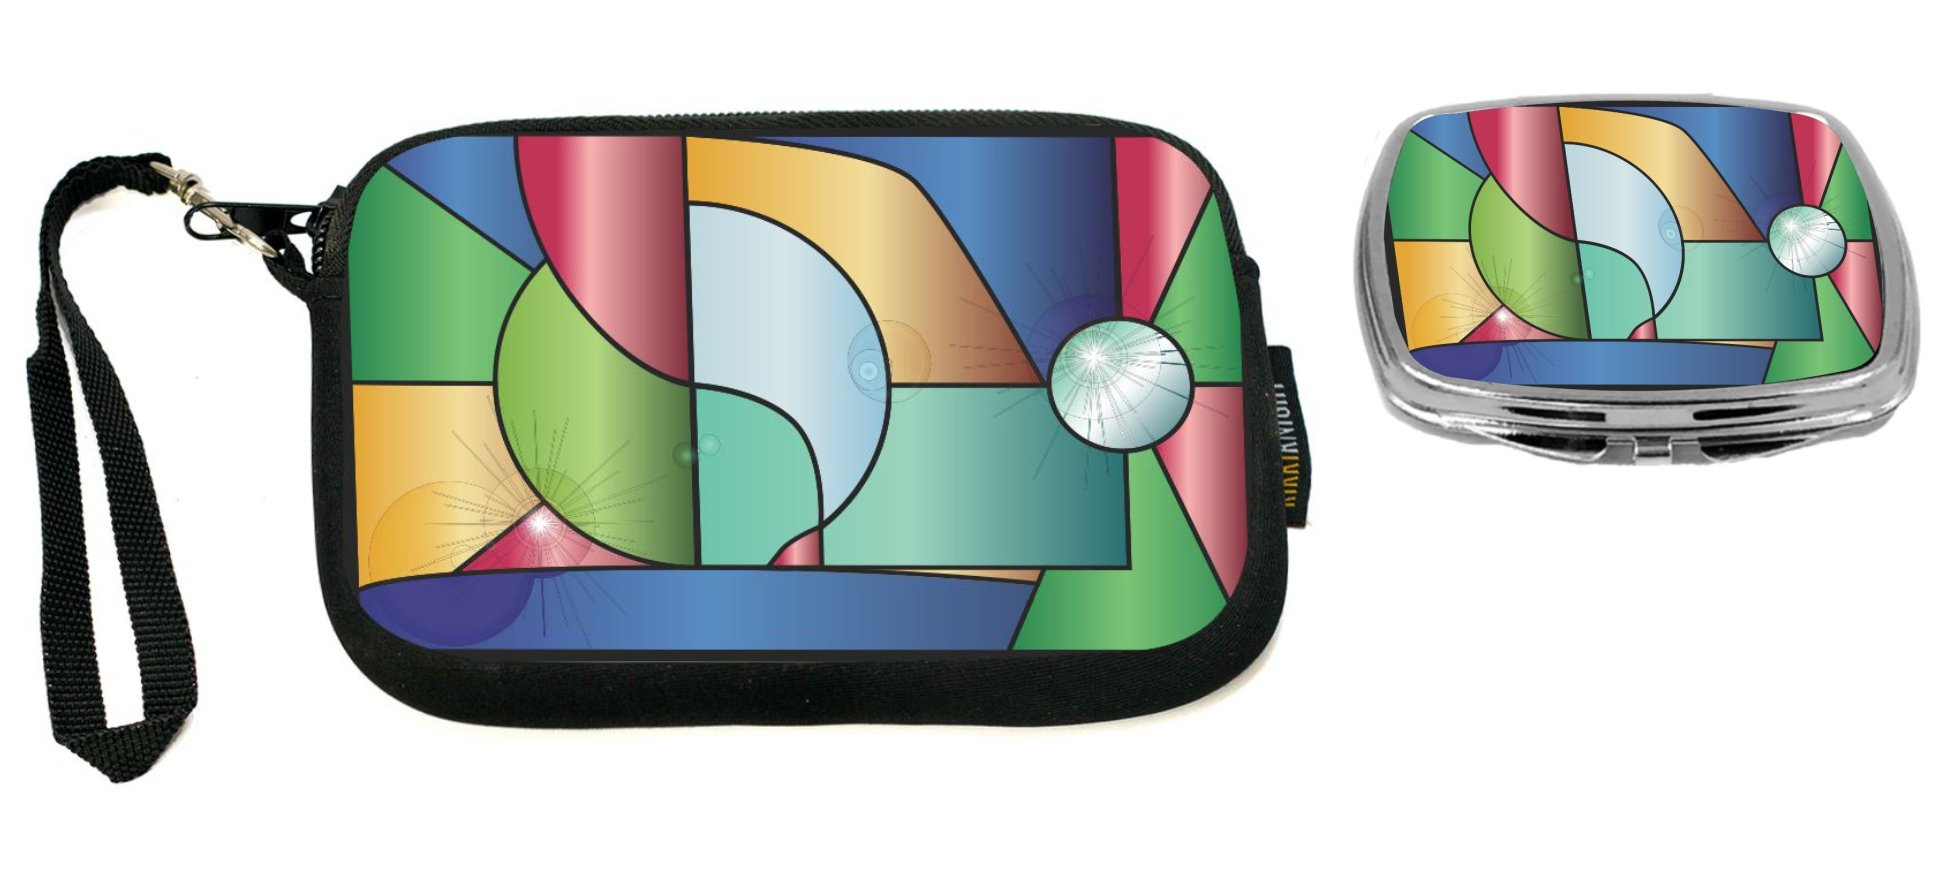 Rikki Knight Stained Glass Window with Reflections Design Neoprene Clutch Wristlet with Matching Square Compact Mirror